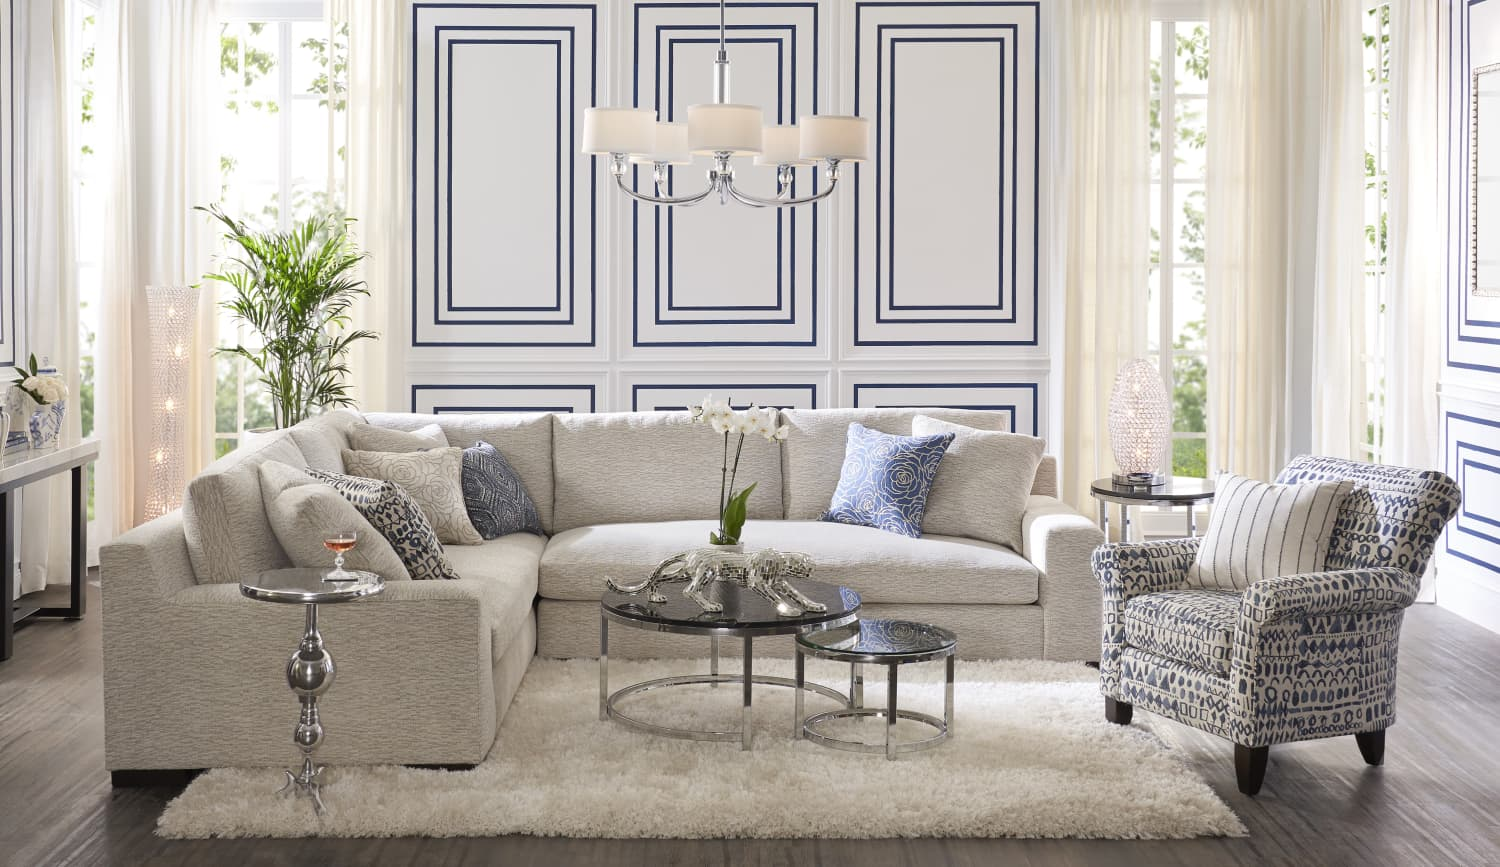 3 Common Living Room Problems and How to Solve Them